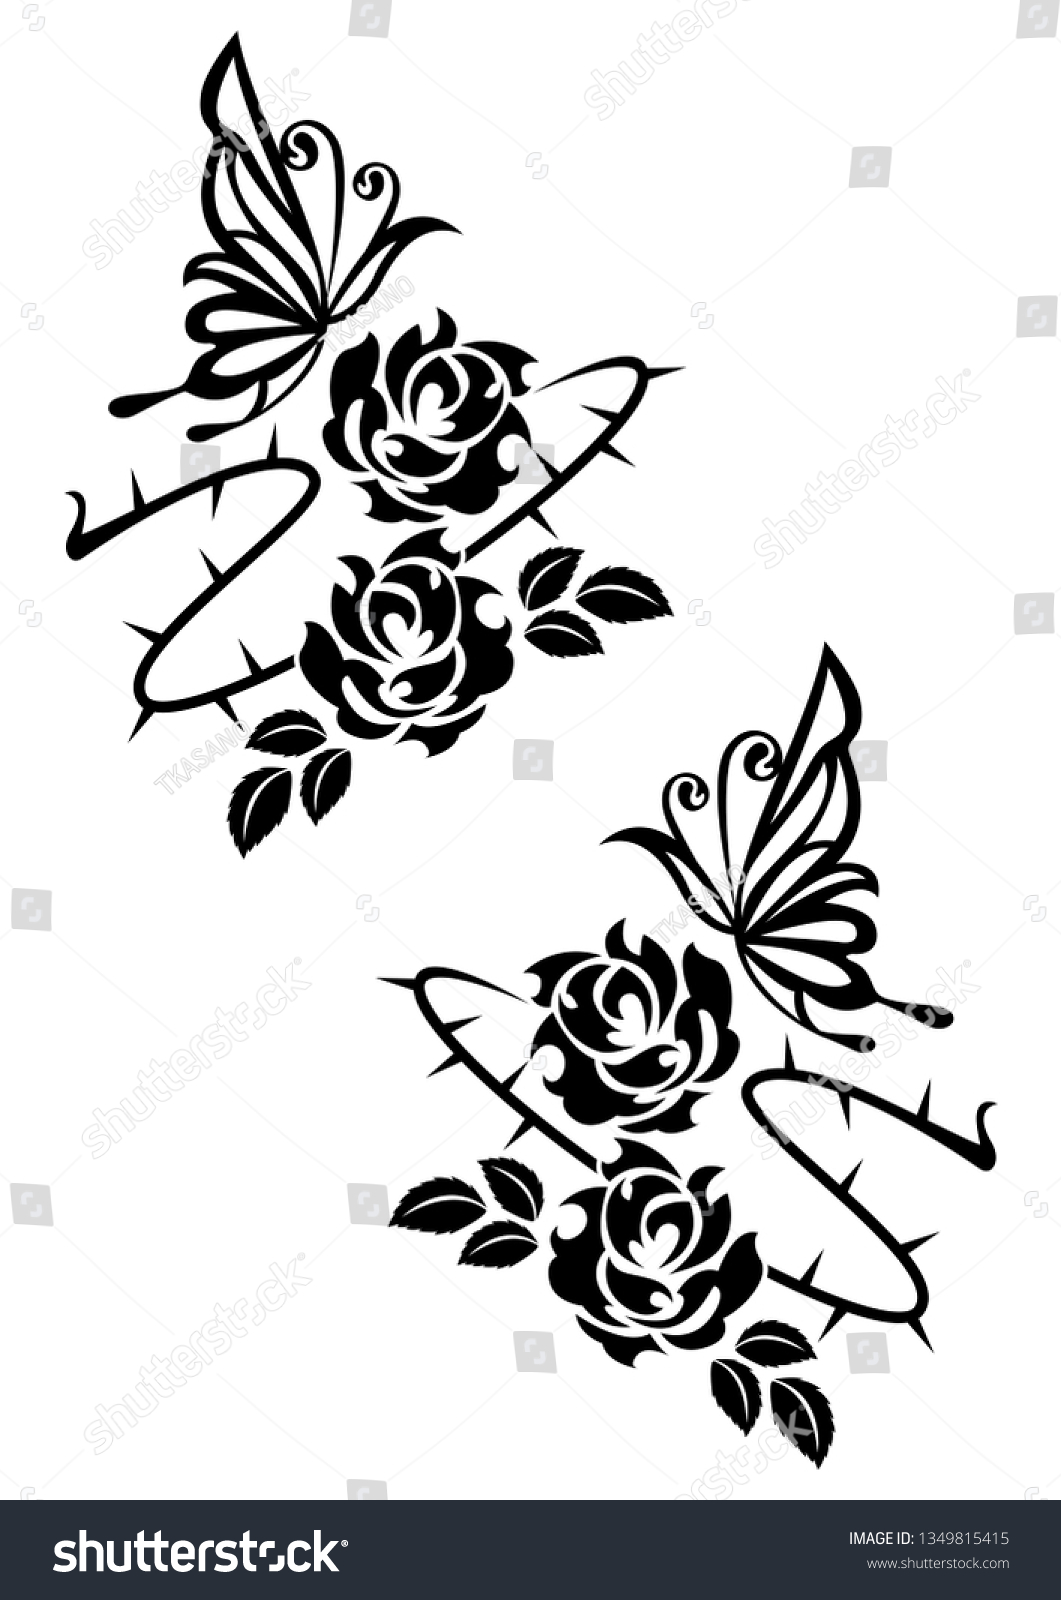 Ethnic Artwork Butterfly Rose Tattoo Tribal Stock Vector Royalty Free 1349815415,Electrical Control Panel Design Calculations